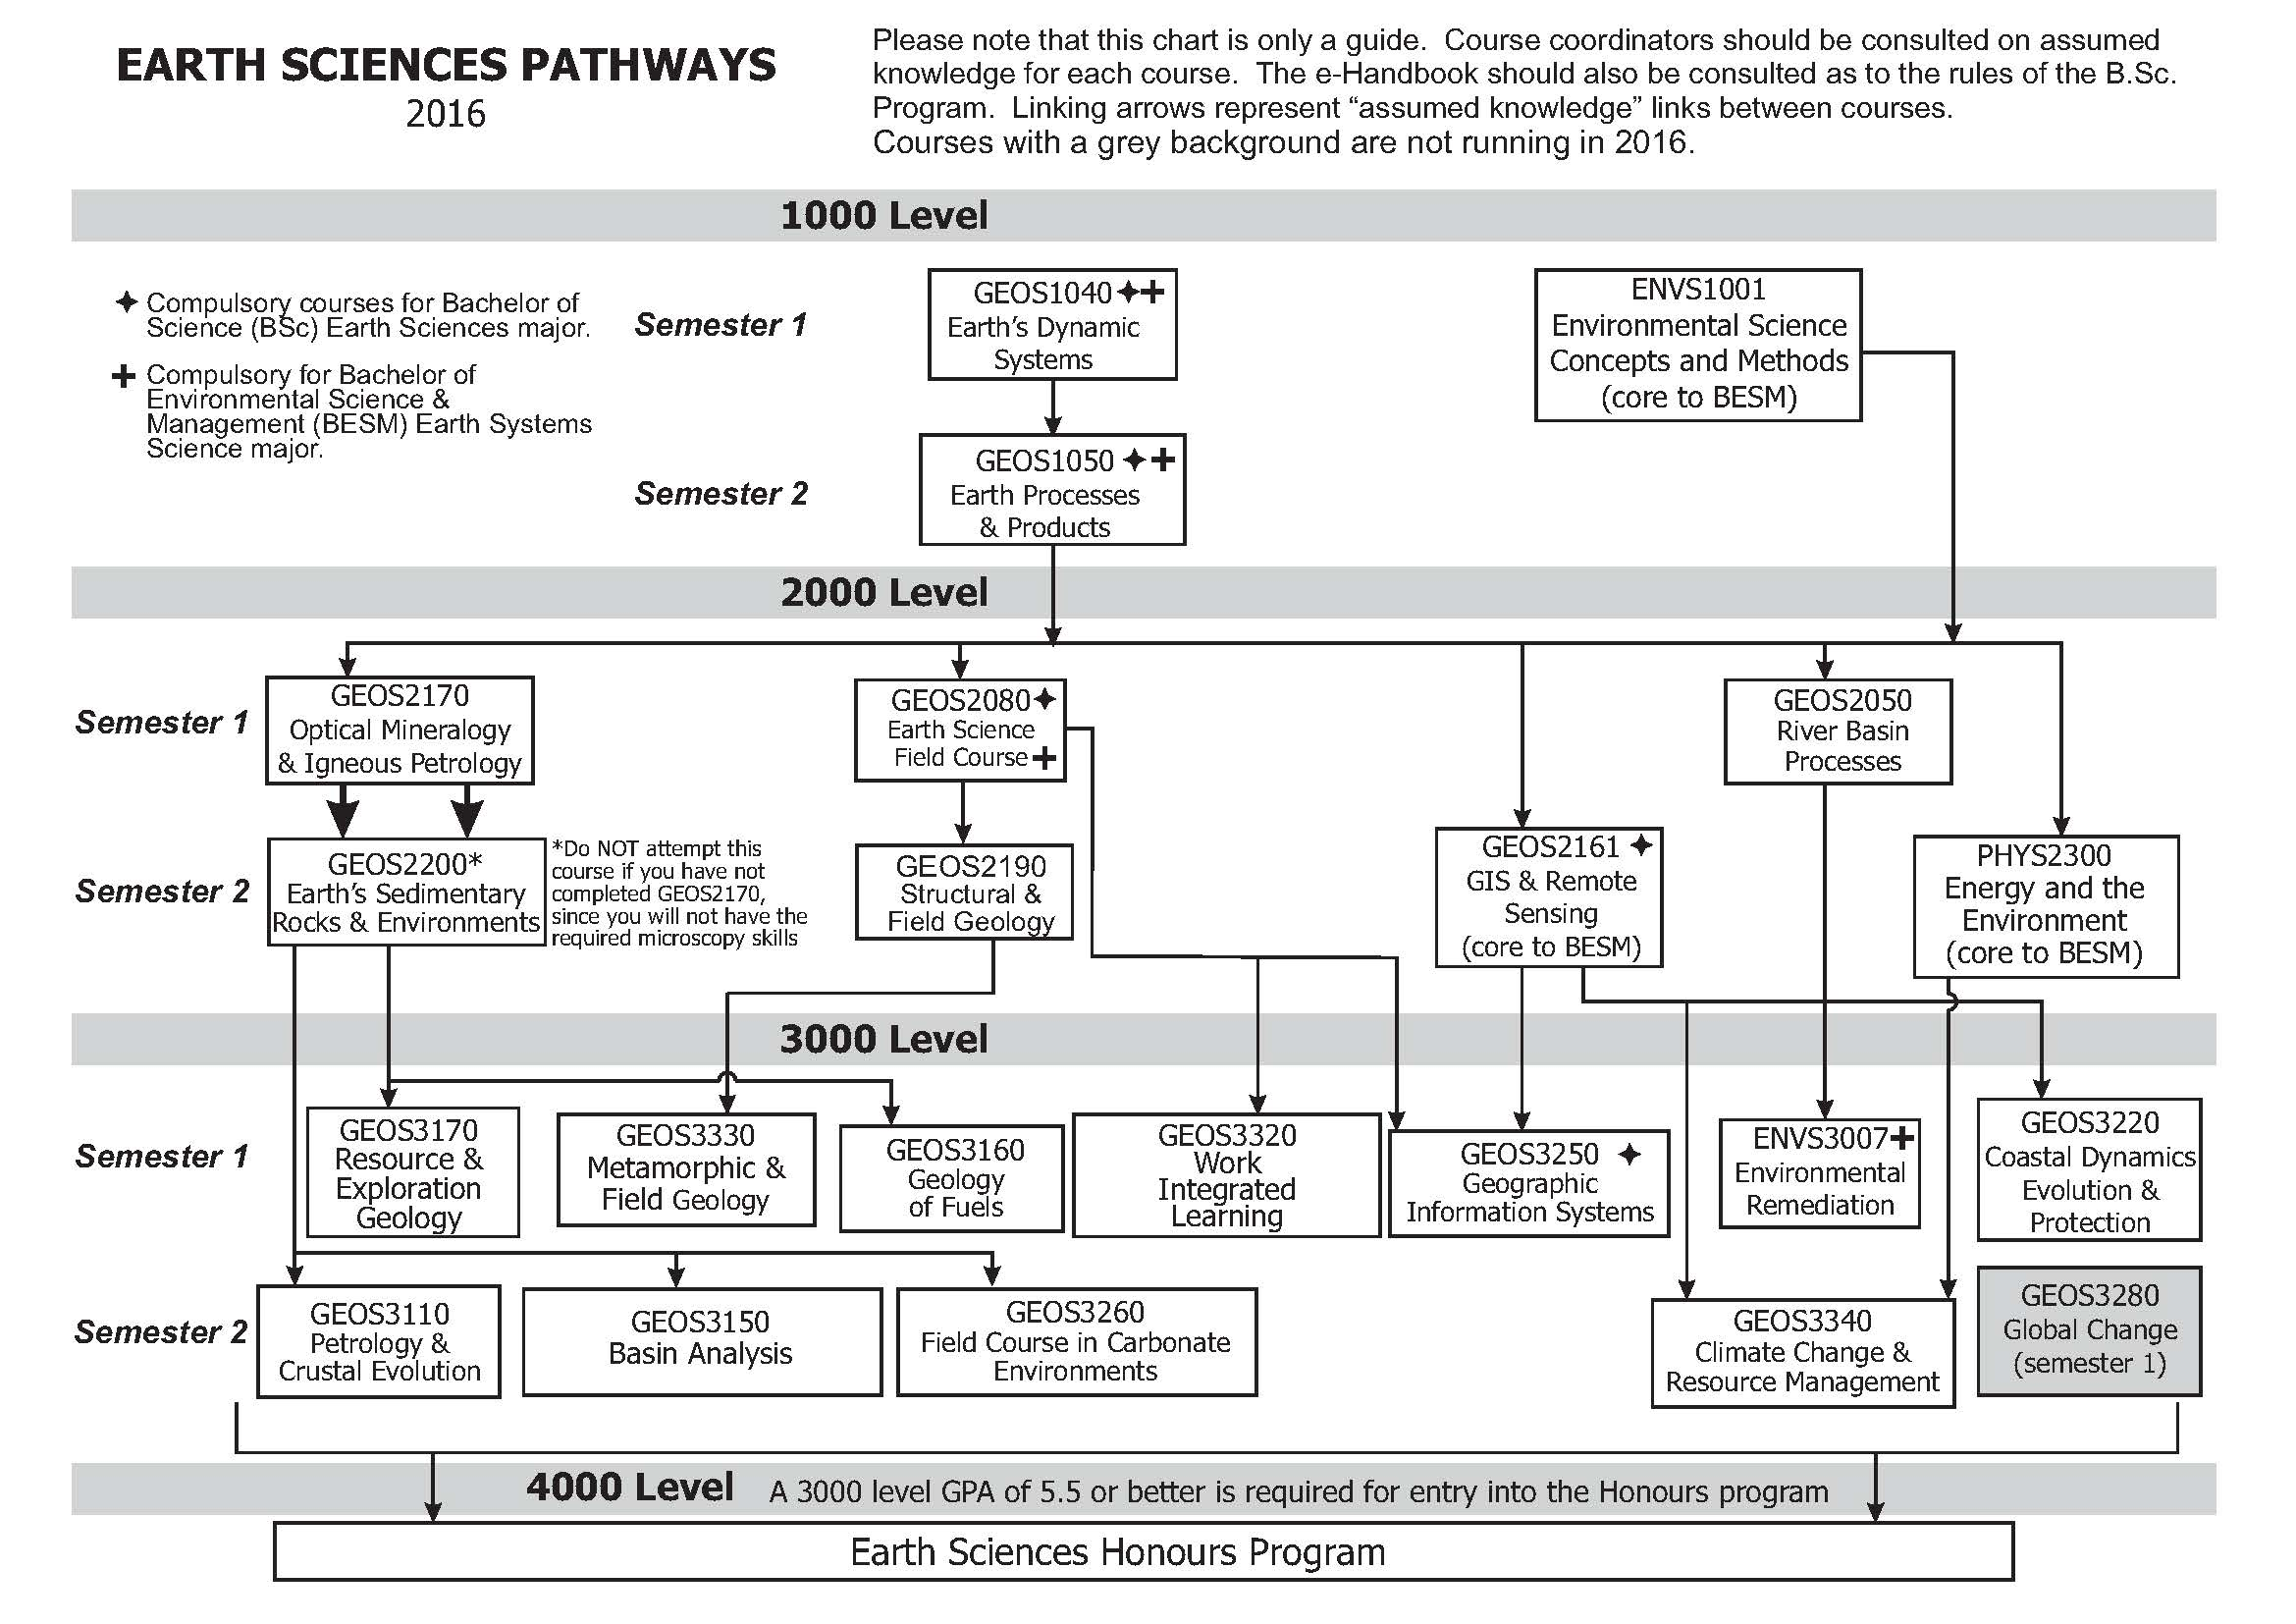 Earth Science pathways 2016